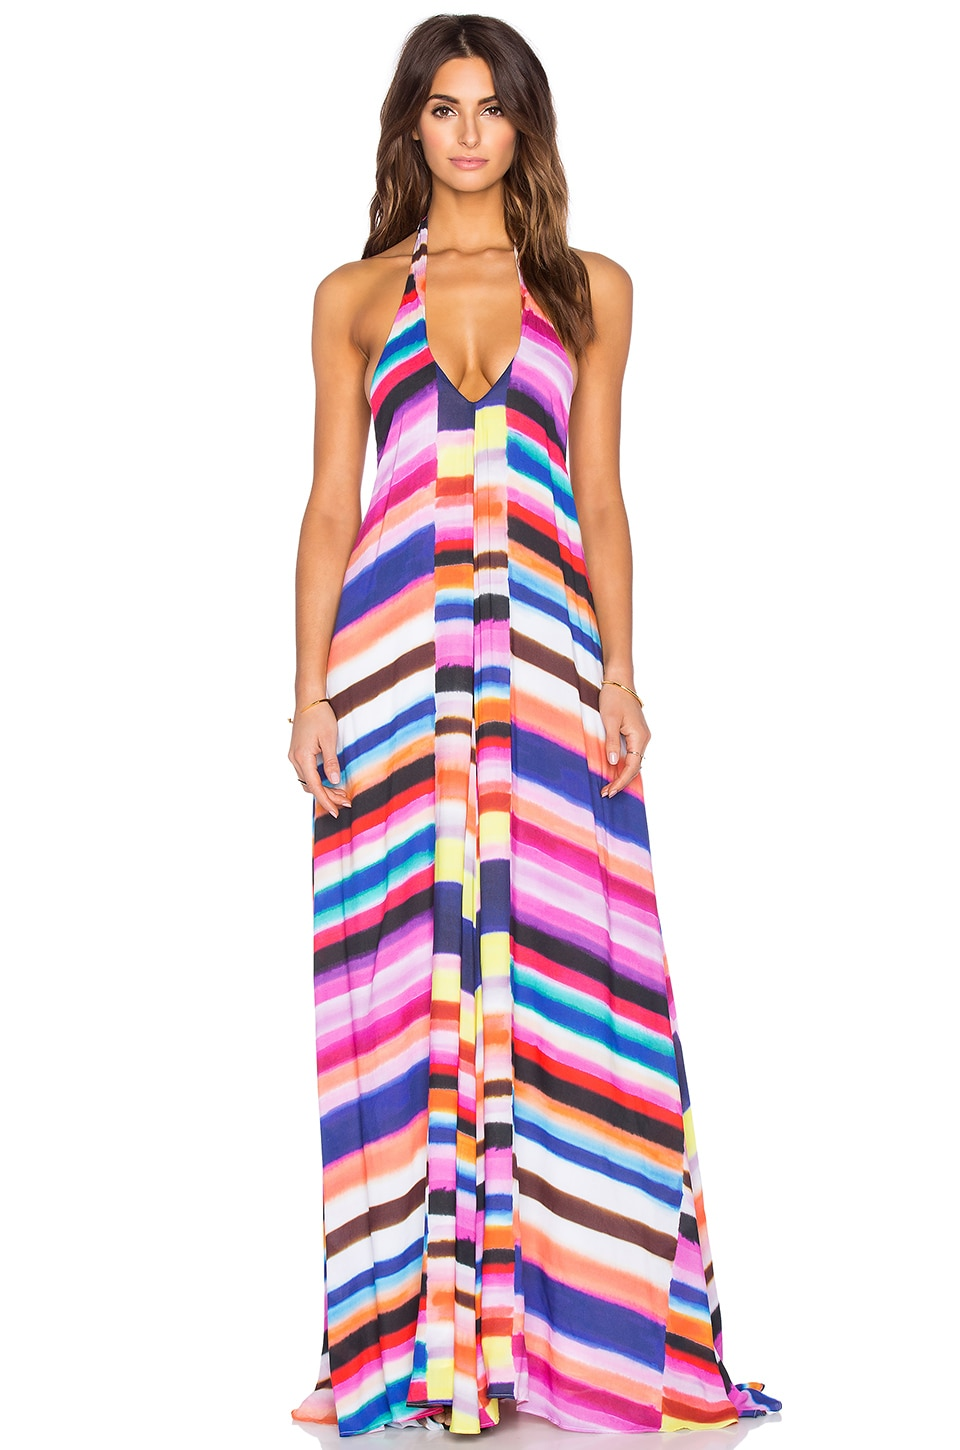 Mara Hoffman Solstice Maxi Dress in Bubble Gum | REVOLVE